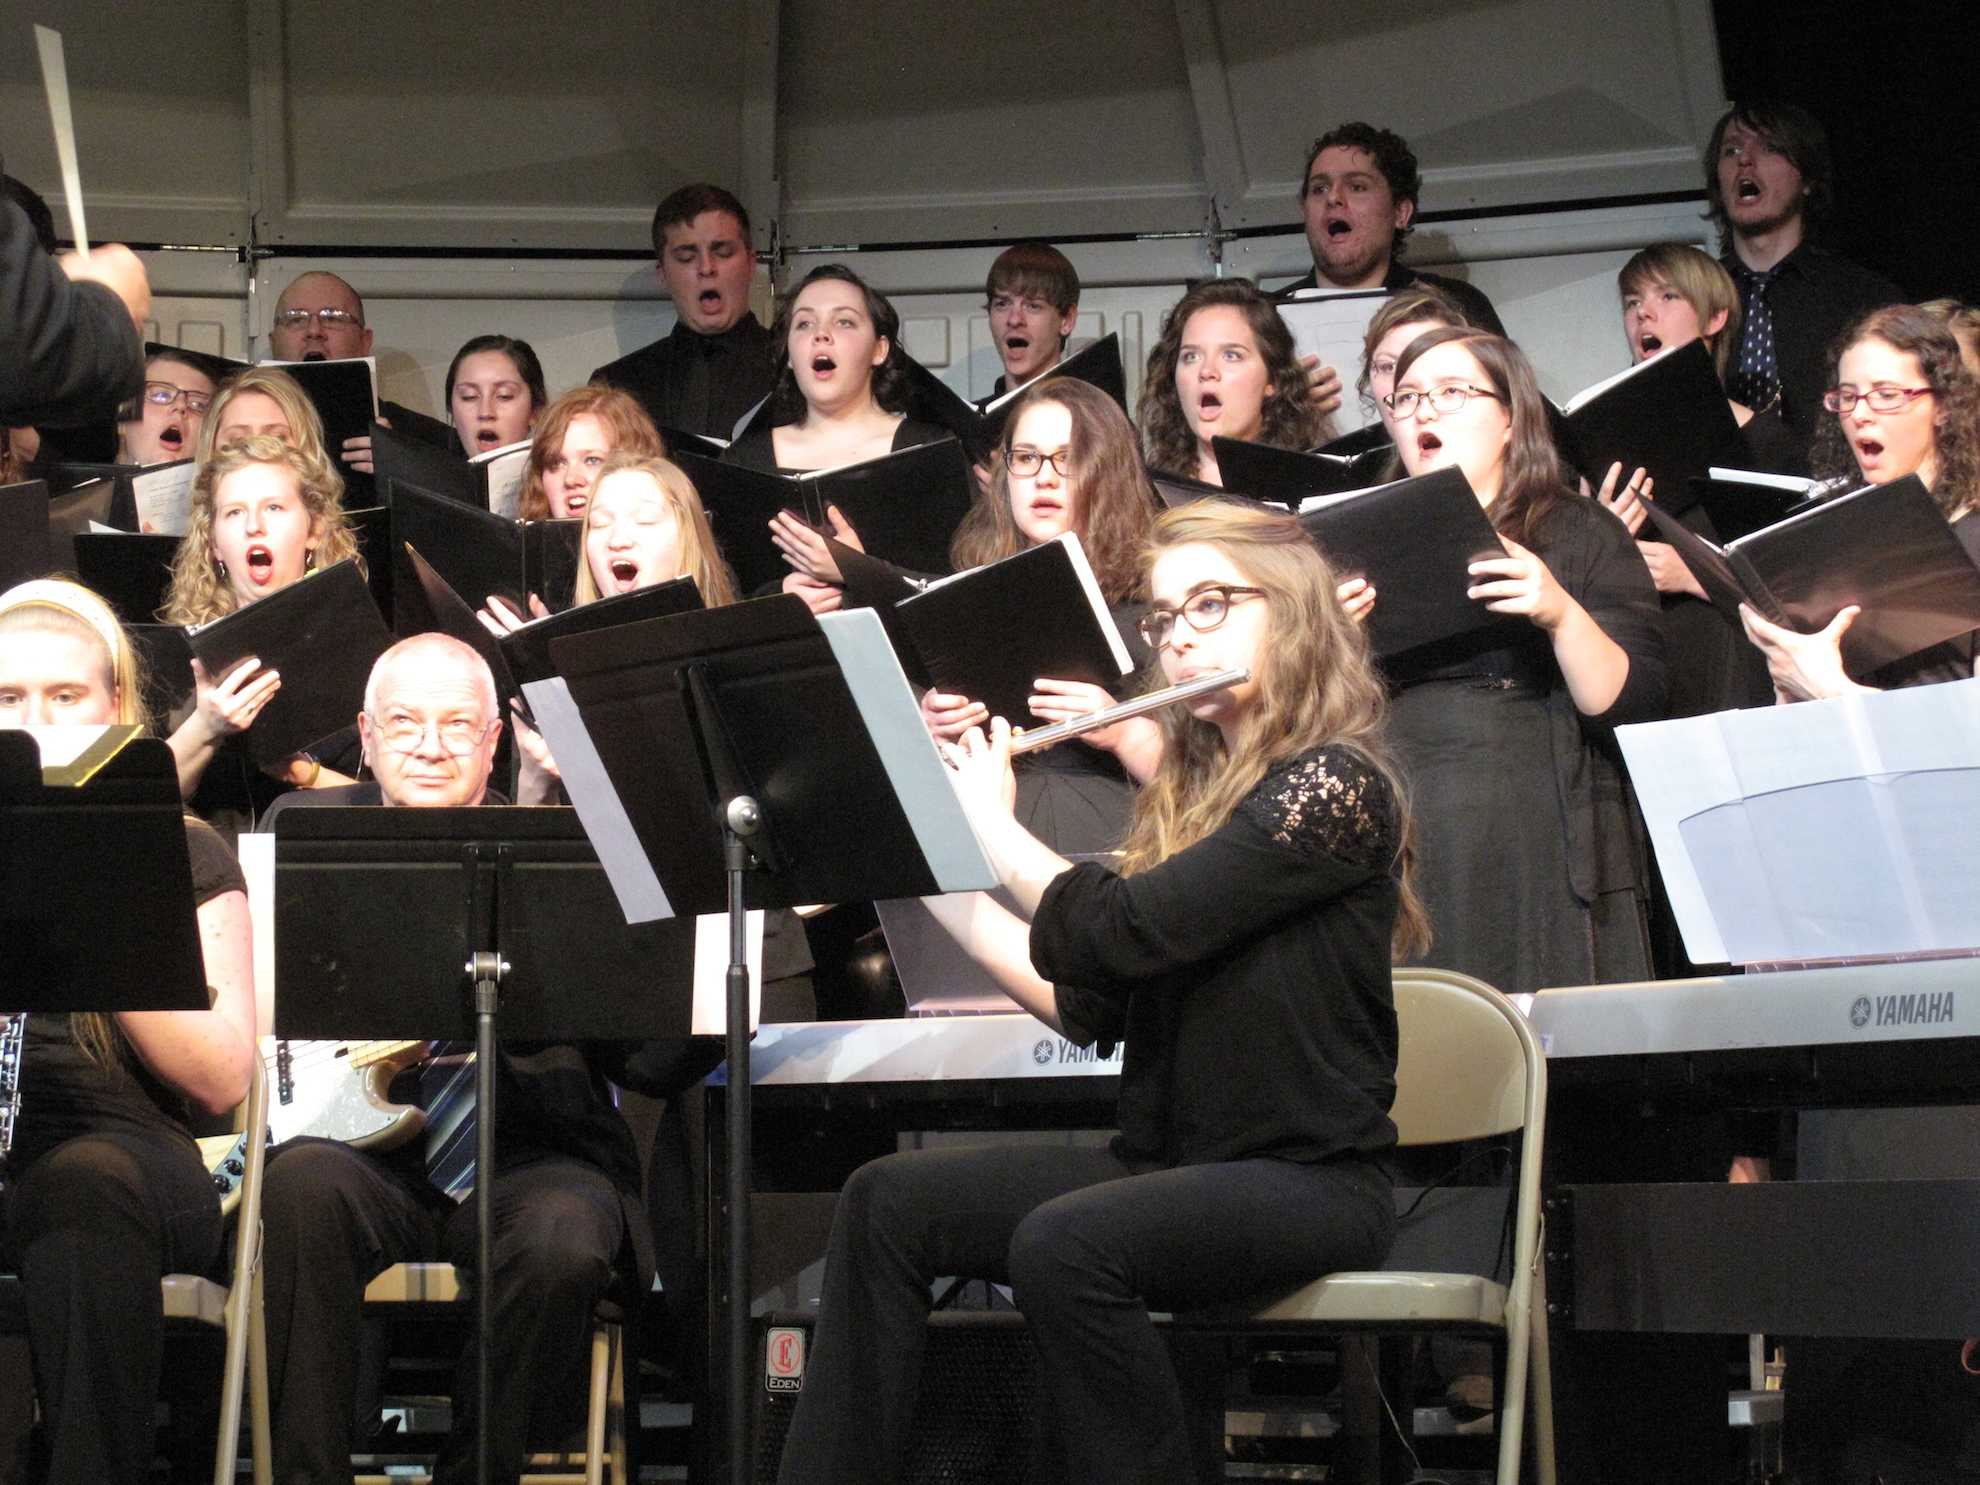 Annual Year End Concert and Awards Highlights Student and Faculty Achievements